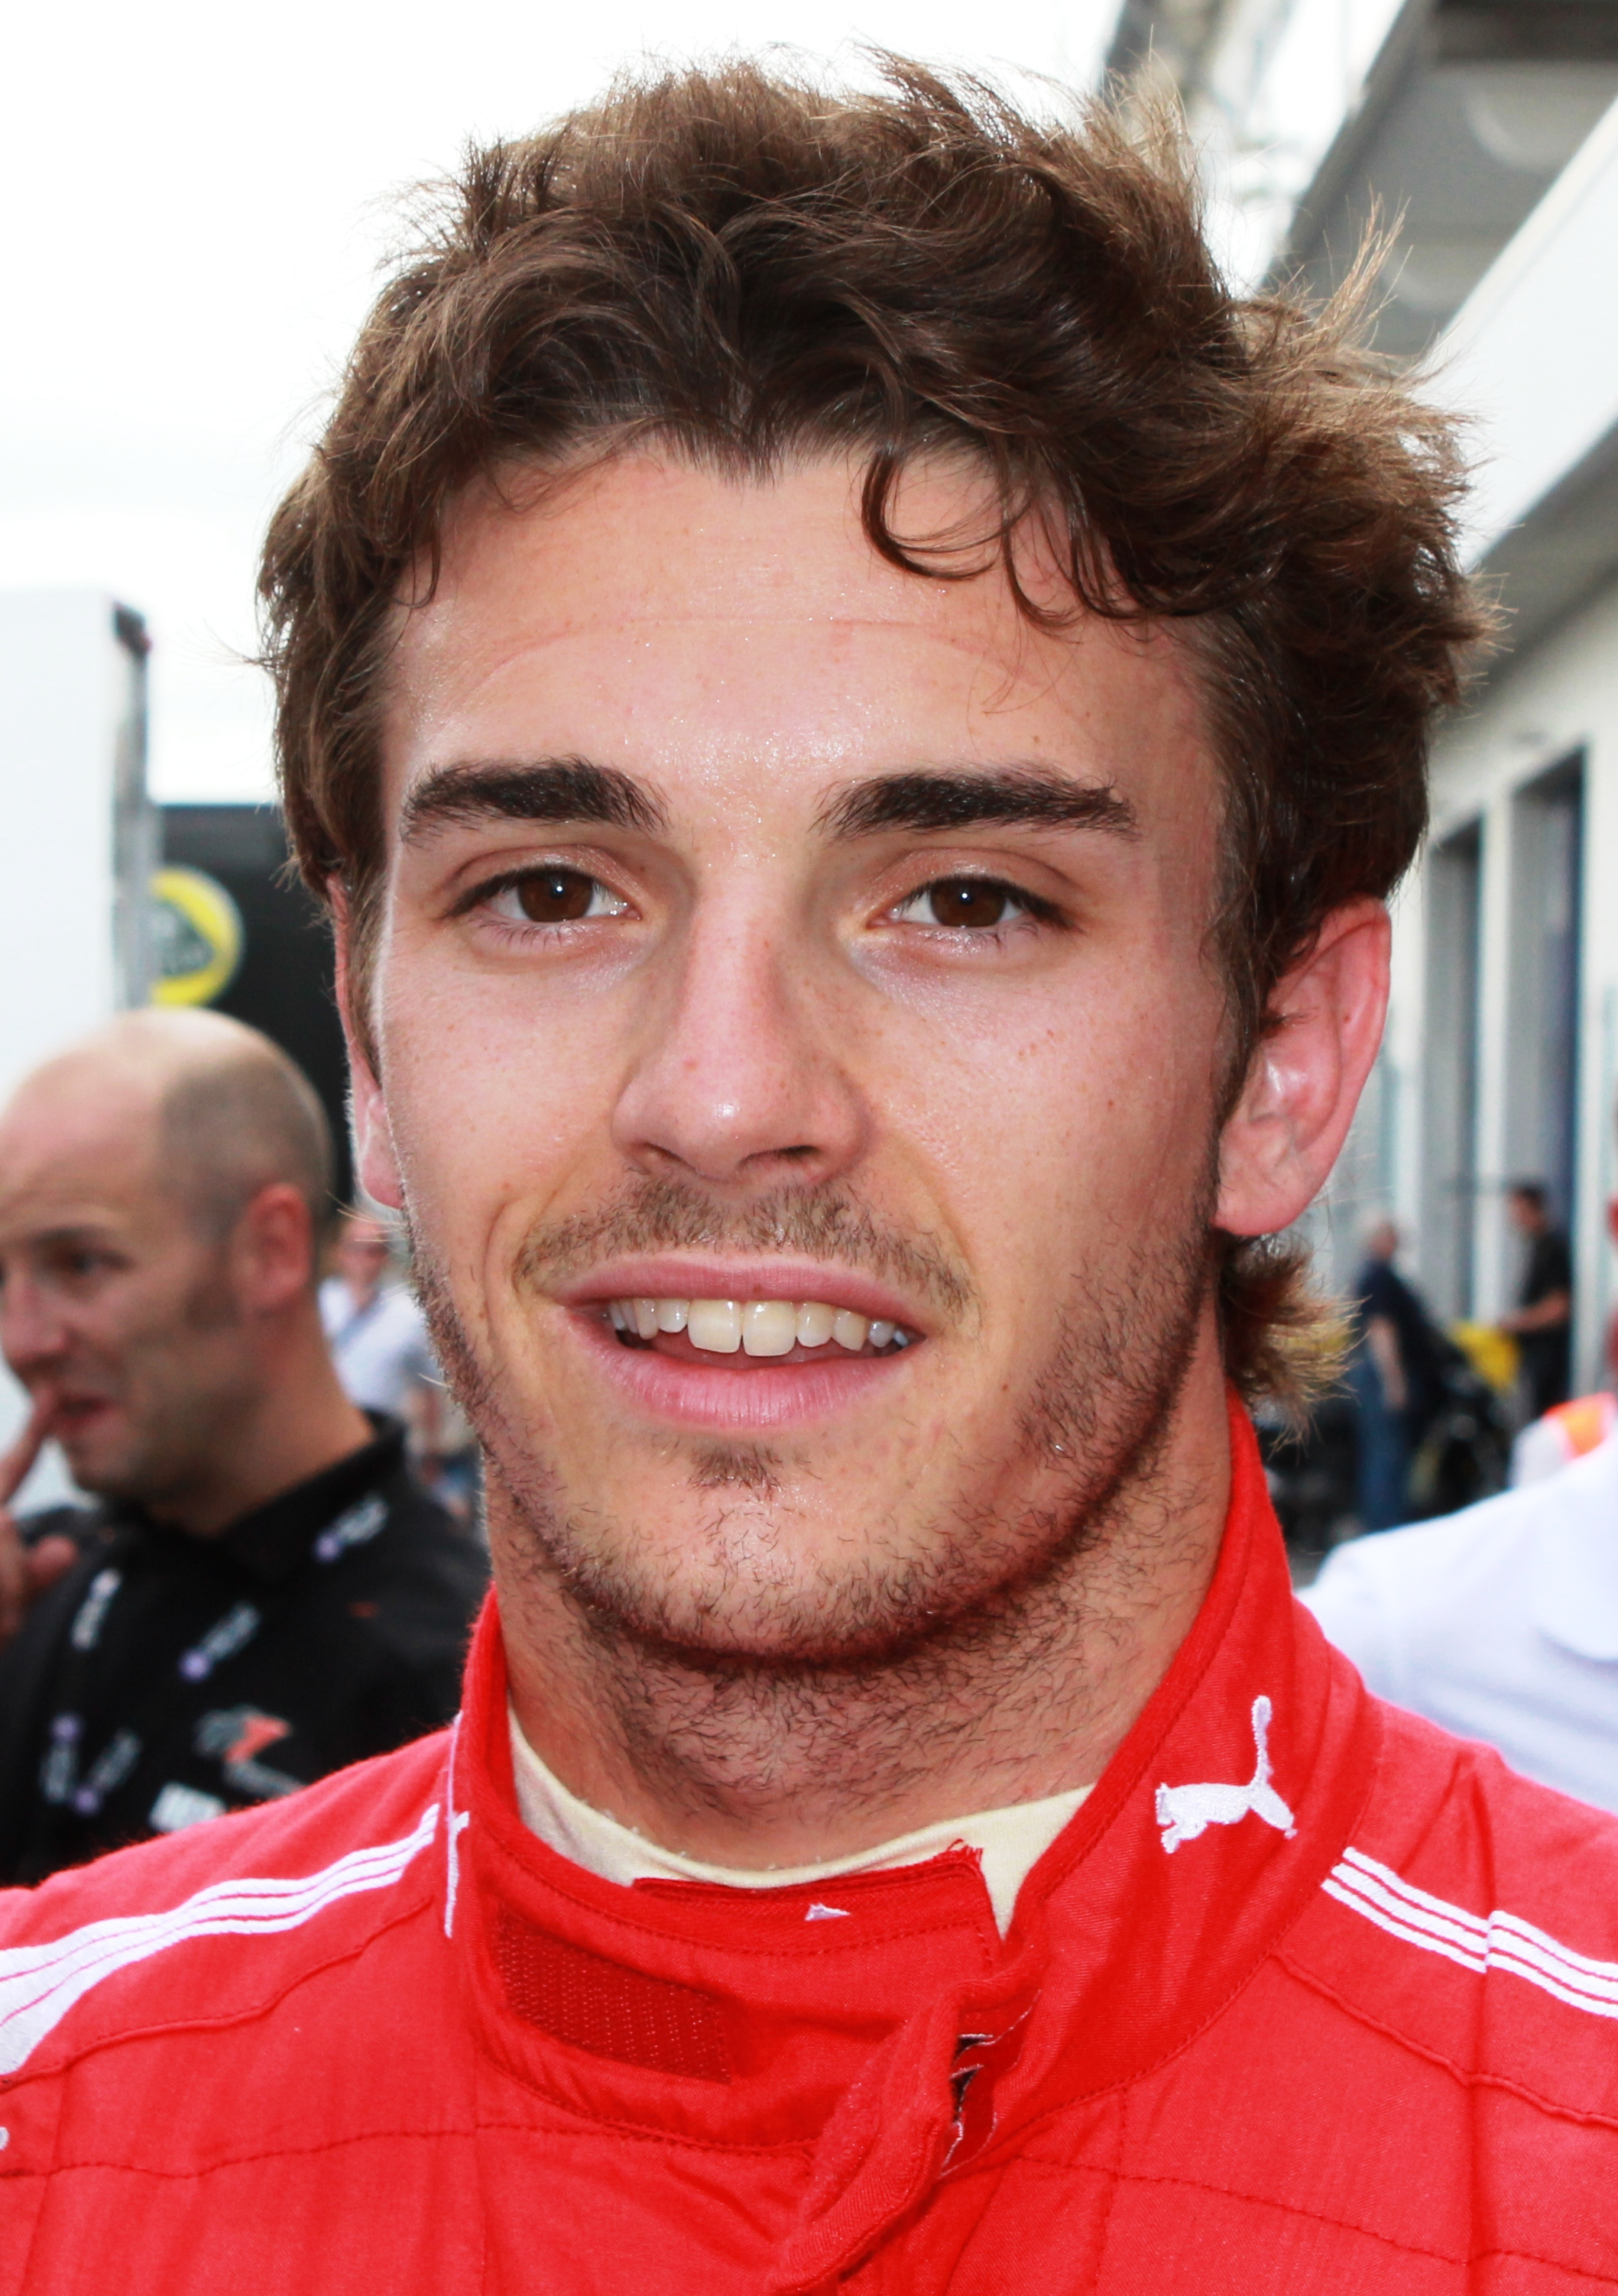 The 29-year old son of father Philippe Bianchi and mother Christine Bianchi Jules Bianchi in 2018 photo. Jules Bianchi earned a 0.8 million dollar salary - leaving the net worth at  million in 2018